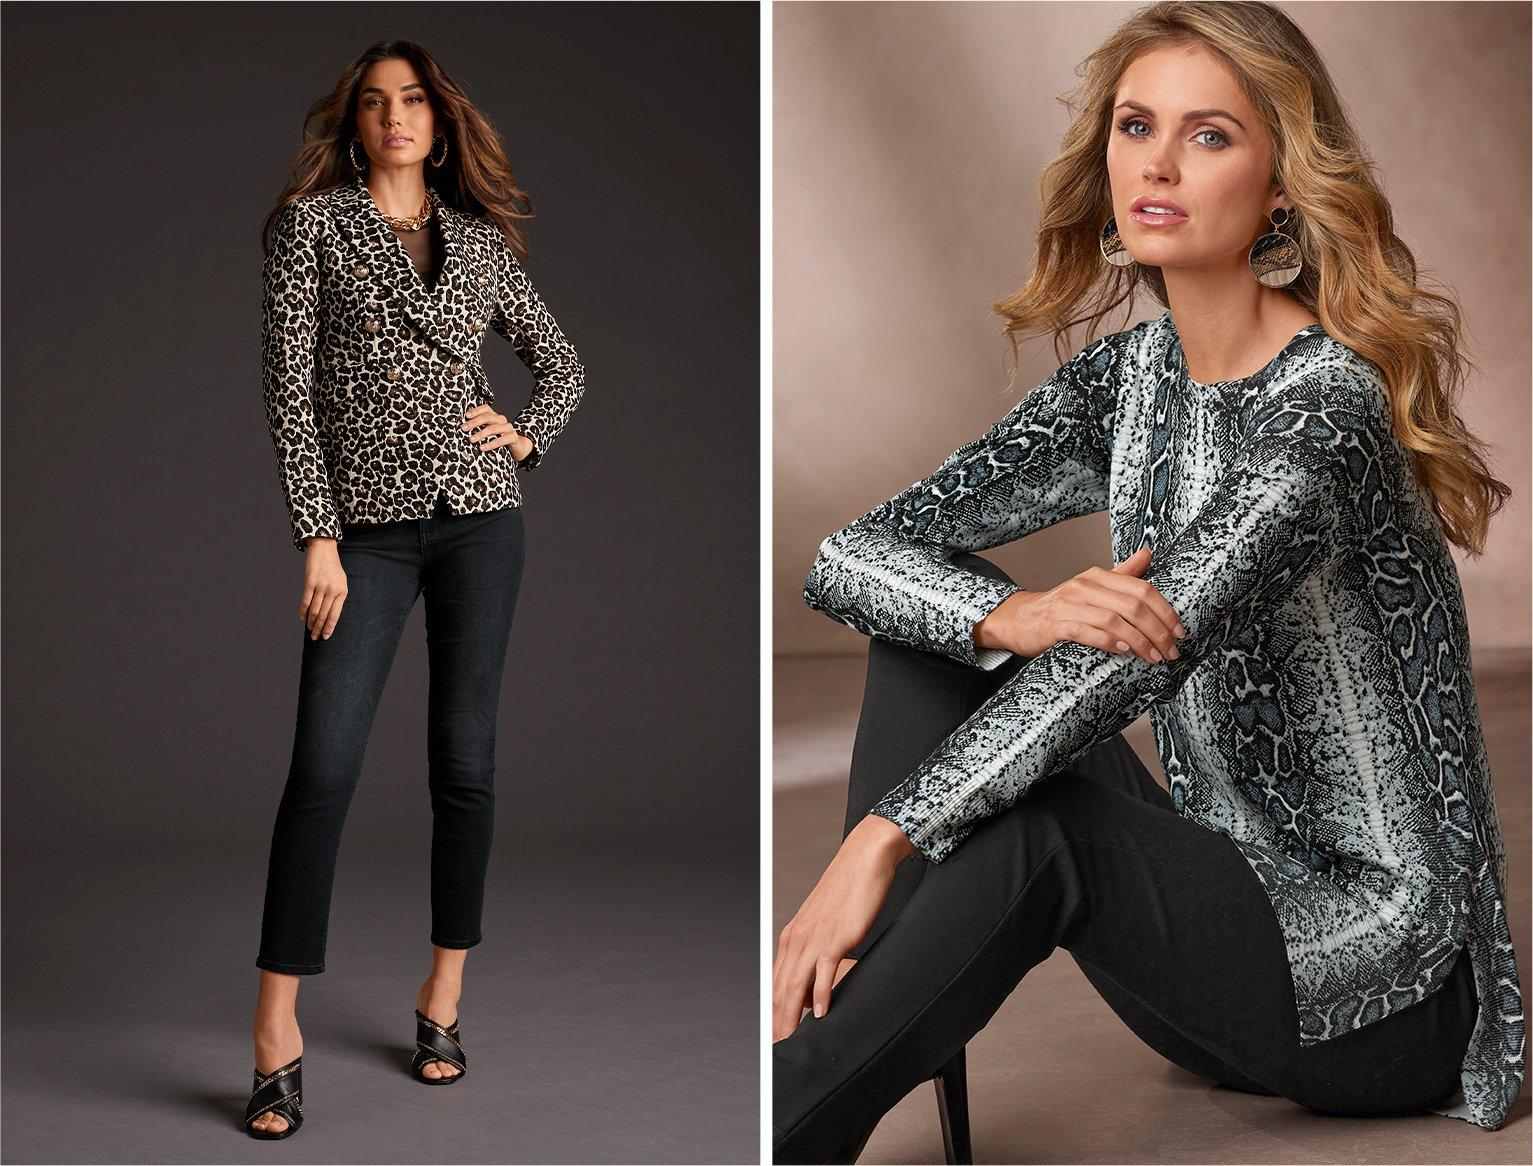 left model wearing a leopard print double-breasted blazer, black mesh bodysuit, black jeans, and black heeled peep-toe mules. right model wearing a black and white snakeskin print tunic sweater and black pants.